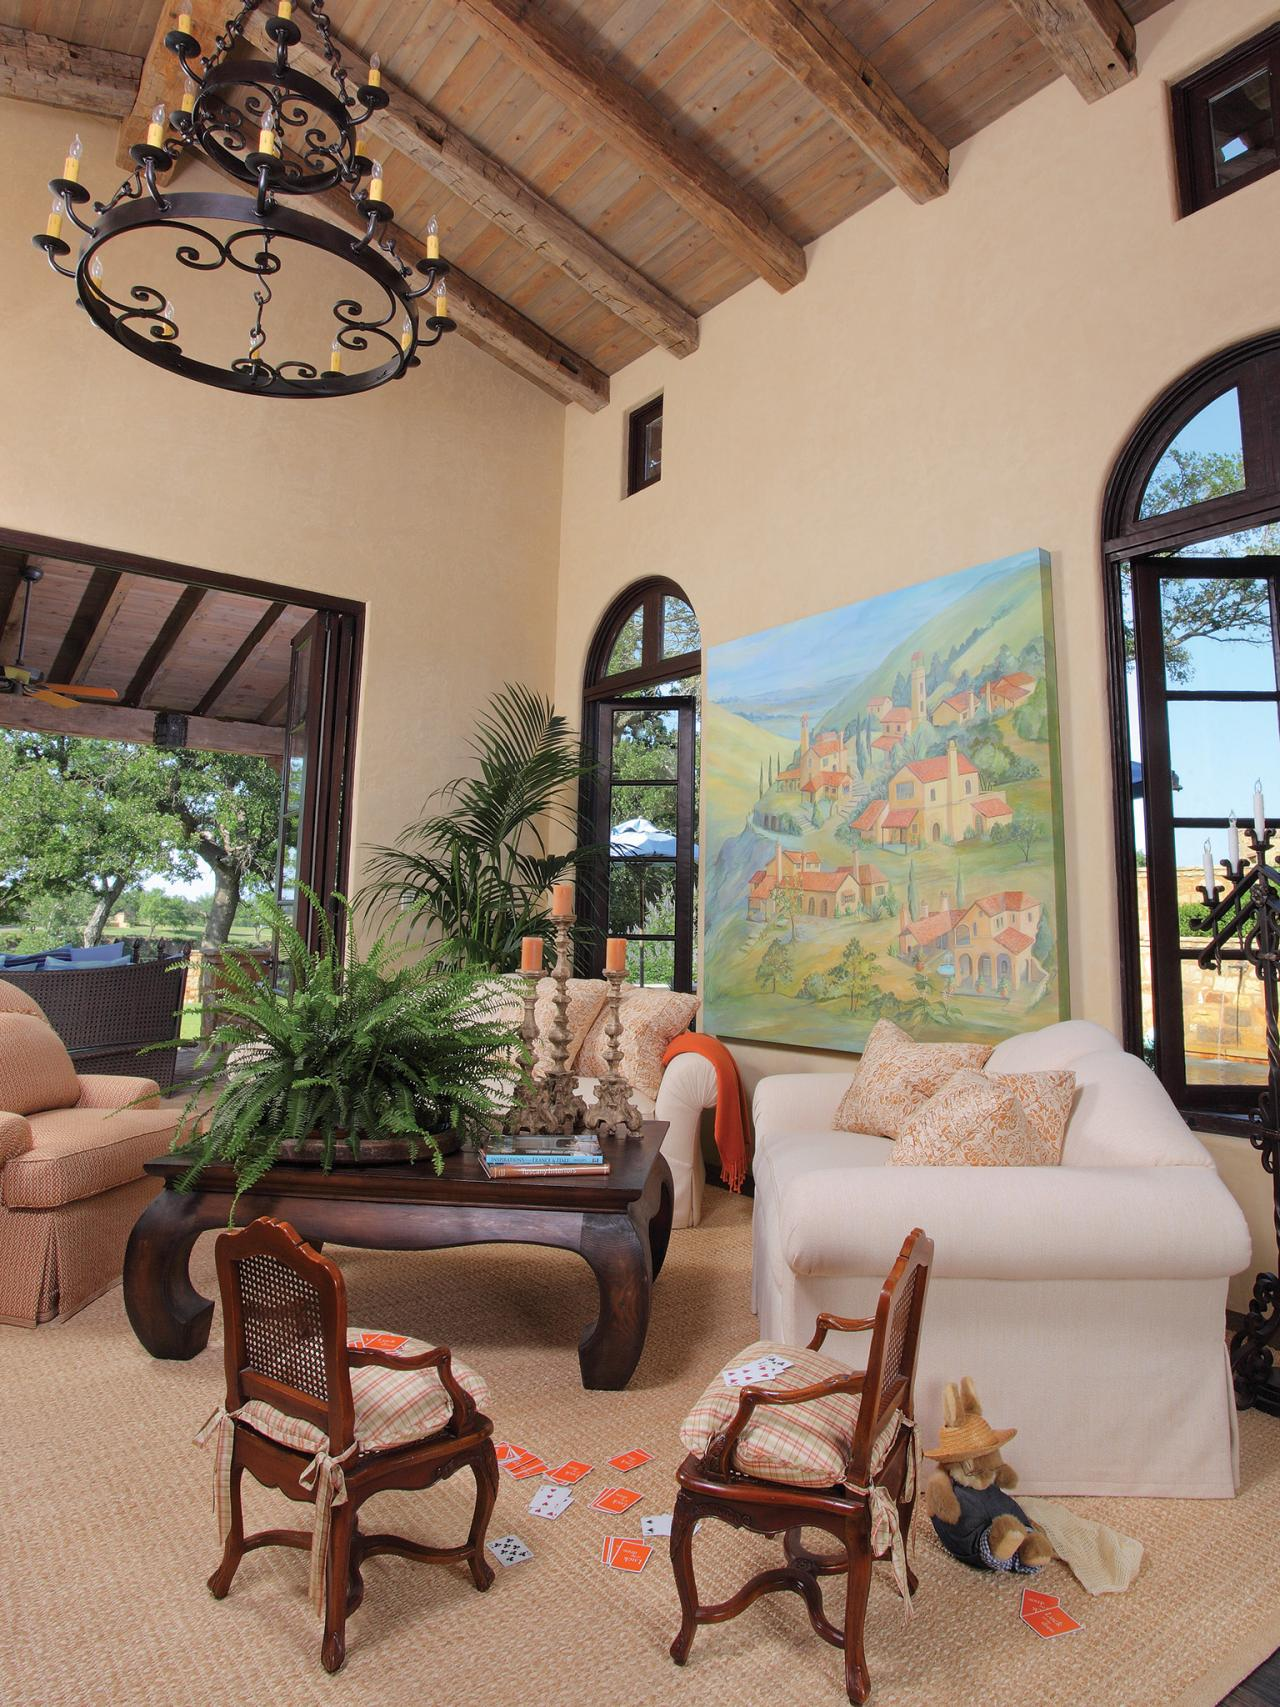 living room in spanish new style furniture design homesfeed decor with exposing beams classic chandelier white sofas wooden table chairs and pretty